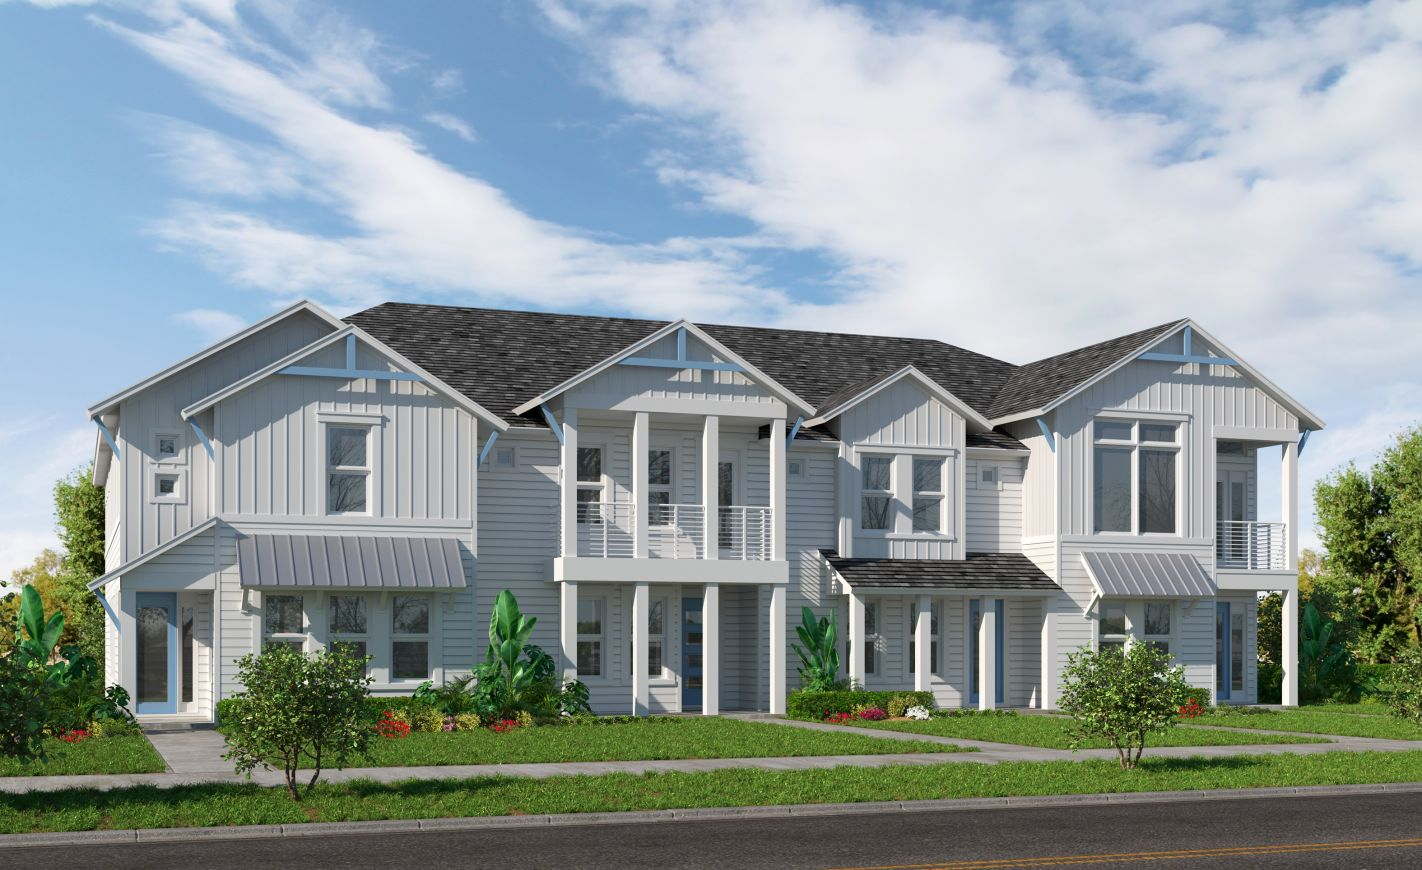 Nocatee Homes for Sale - The Augustine at Nocatee